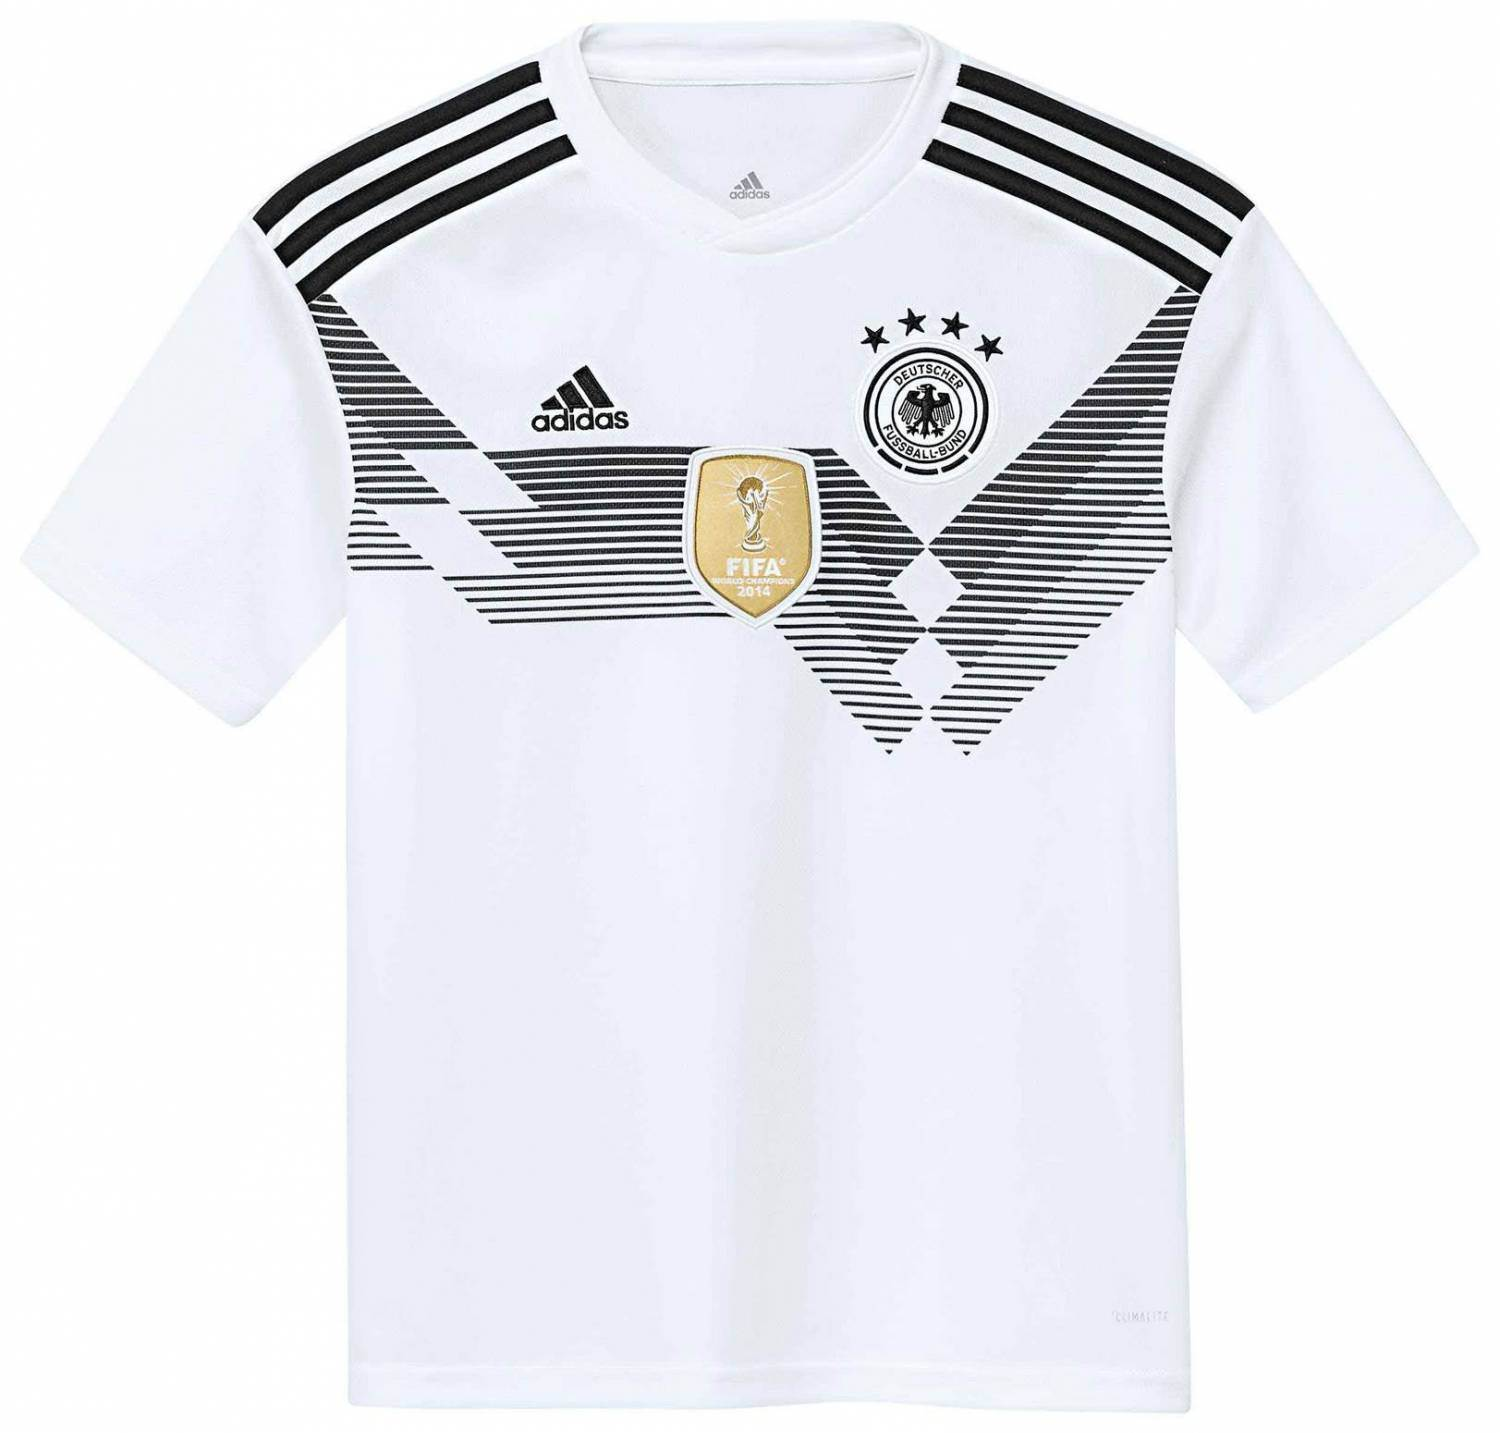 adidas DFB Home Jersey Youth Kinder Trikot (Größe 164, white black)